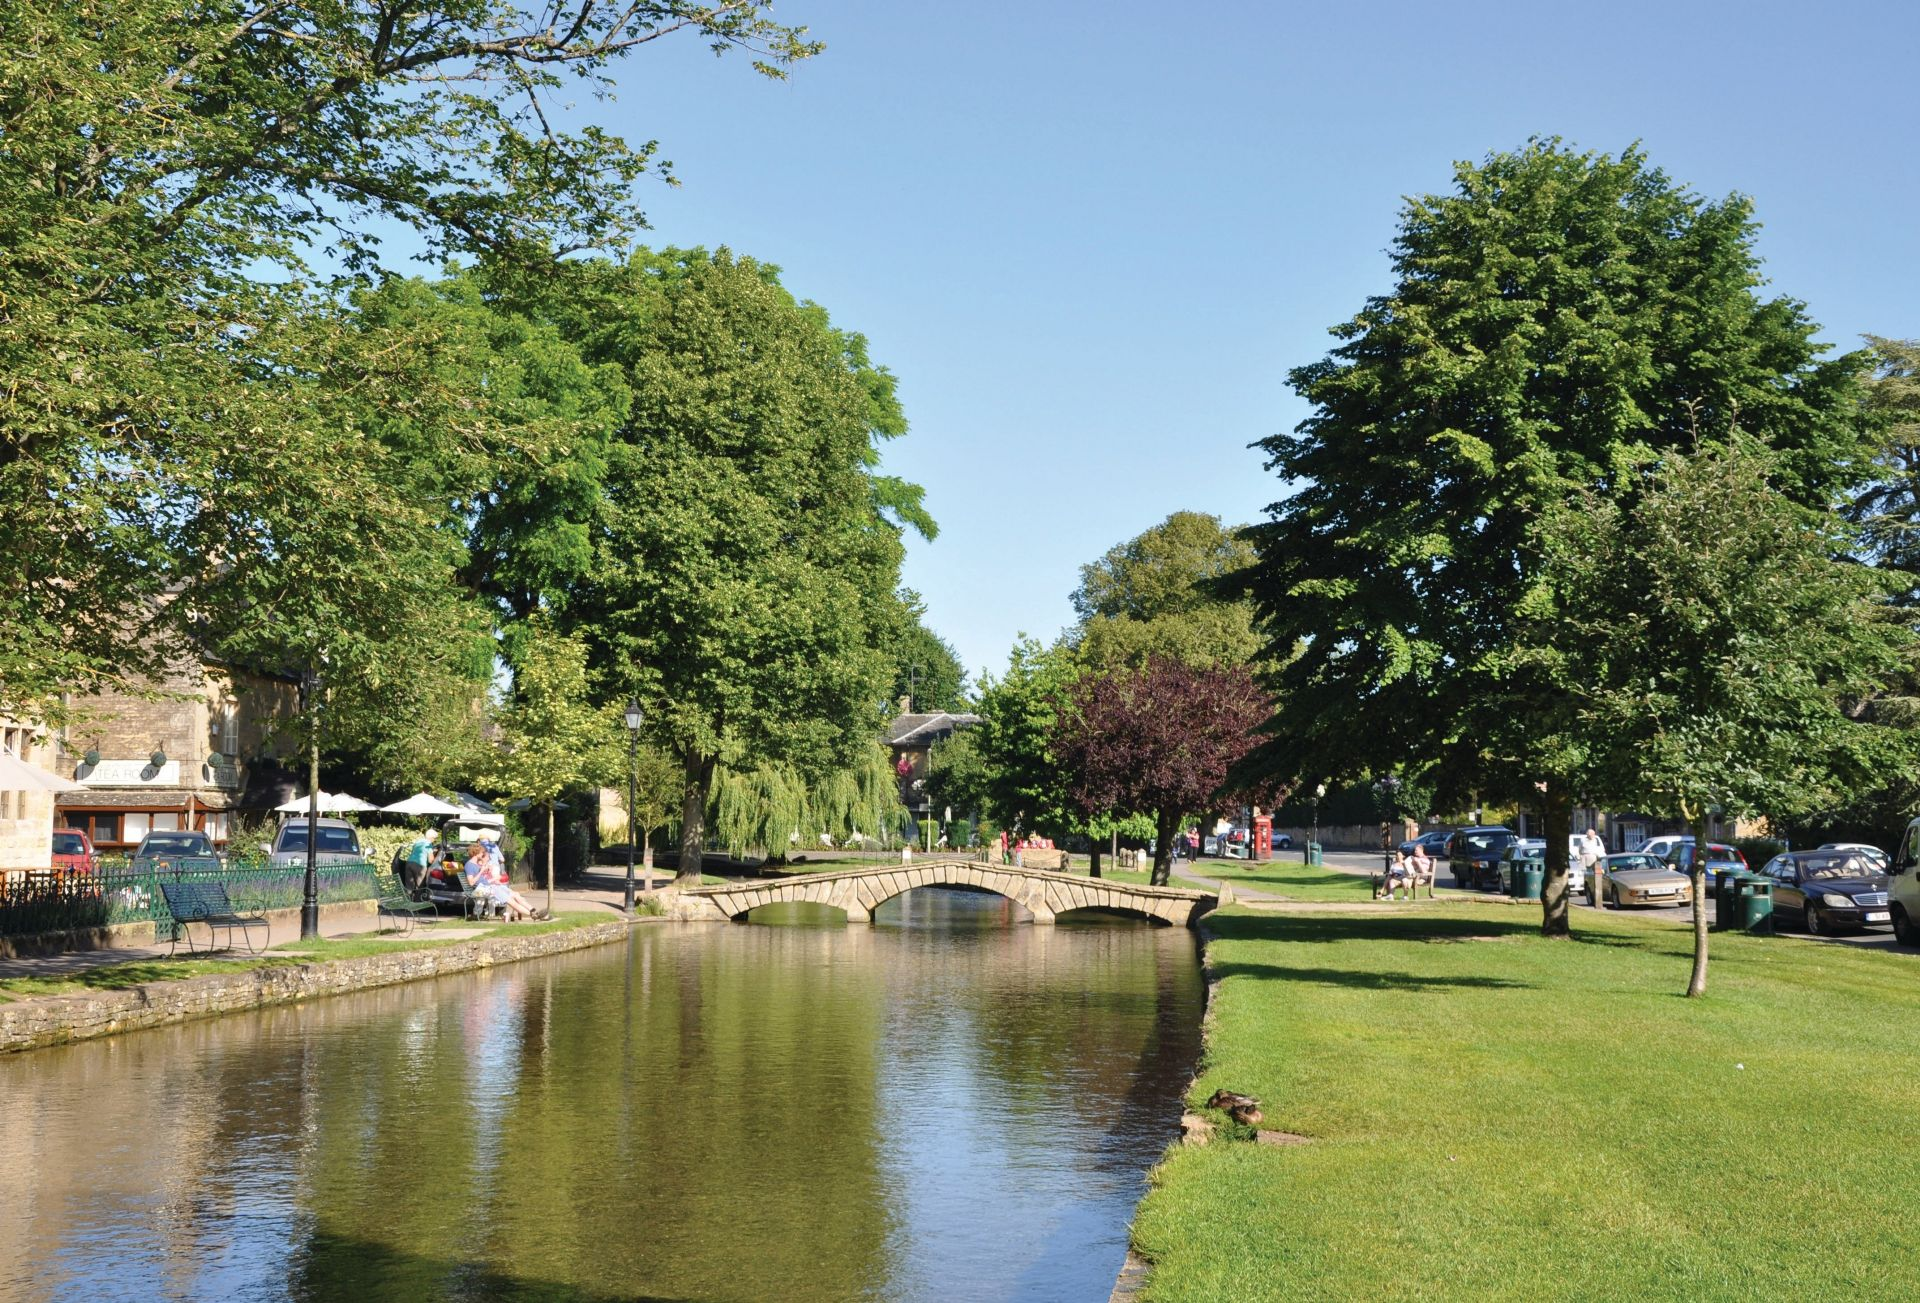 Bourton-on-the-Water, a popular tourist destination and the home of 'Brum' can be reached within 20 minutes from the property.